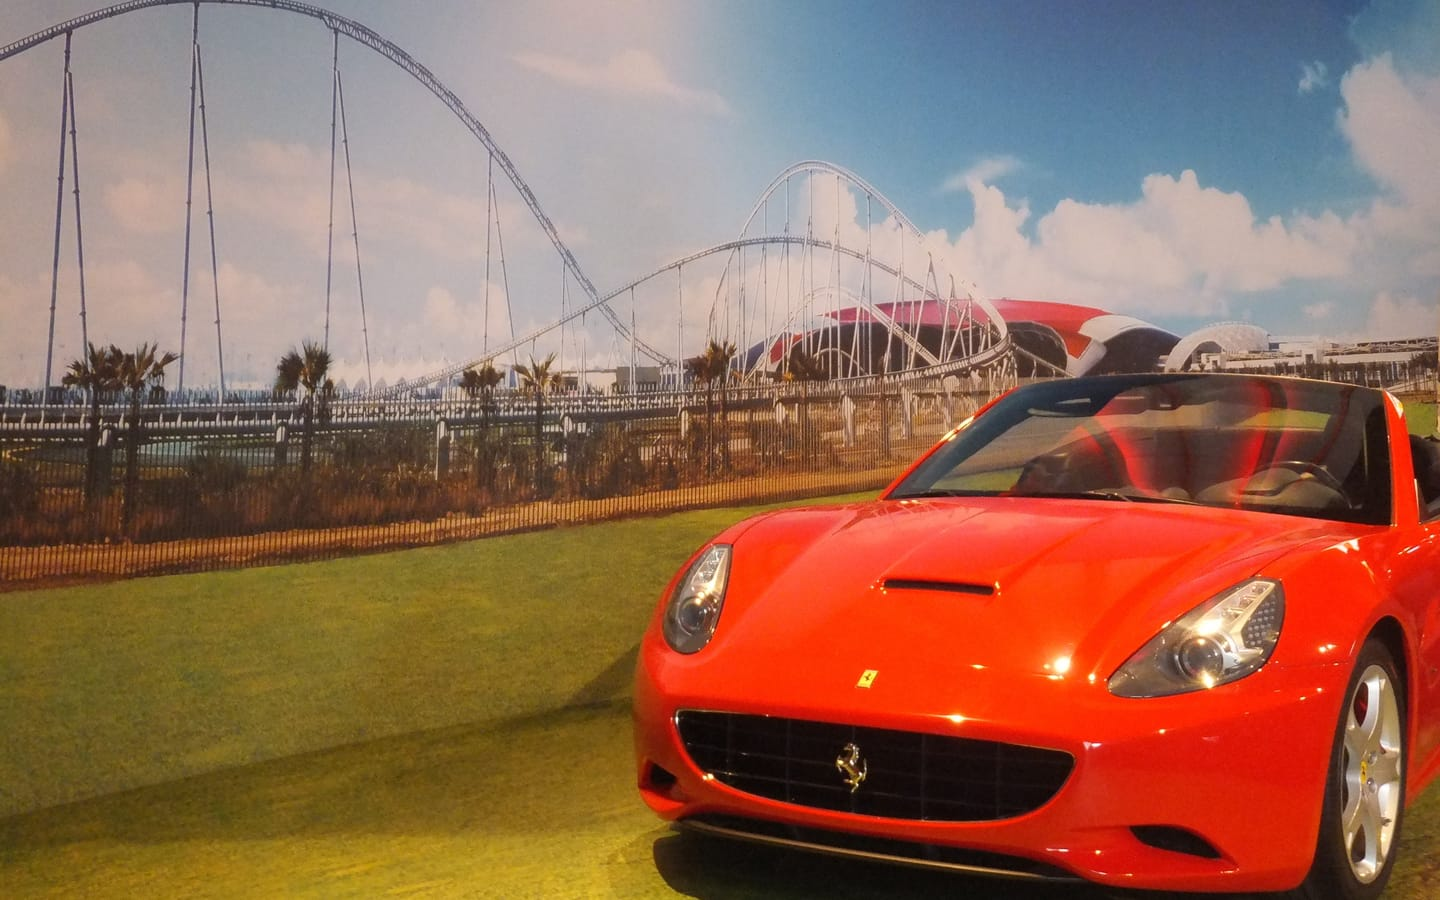 Driving experience in Ferrari world